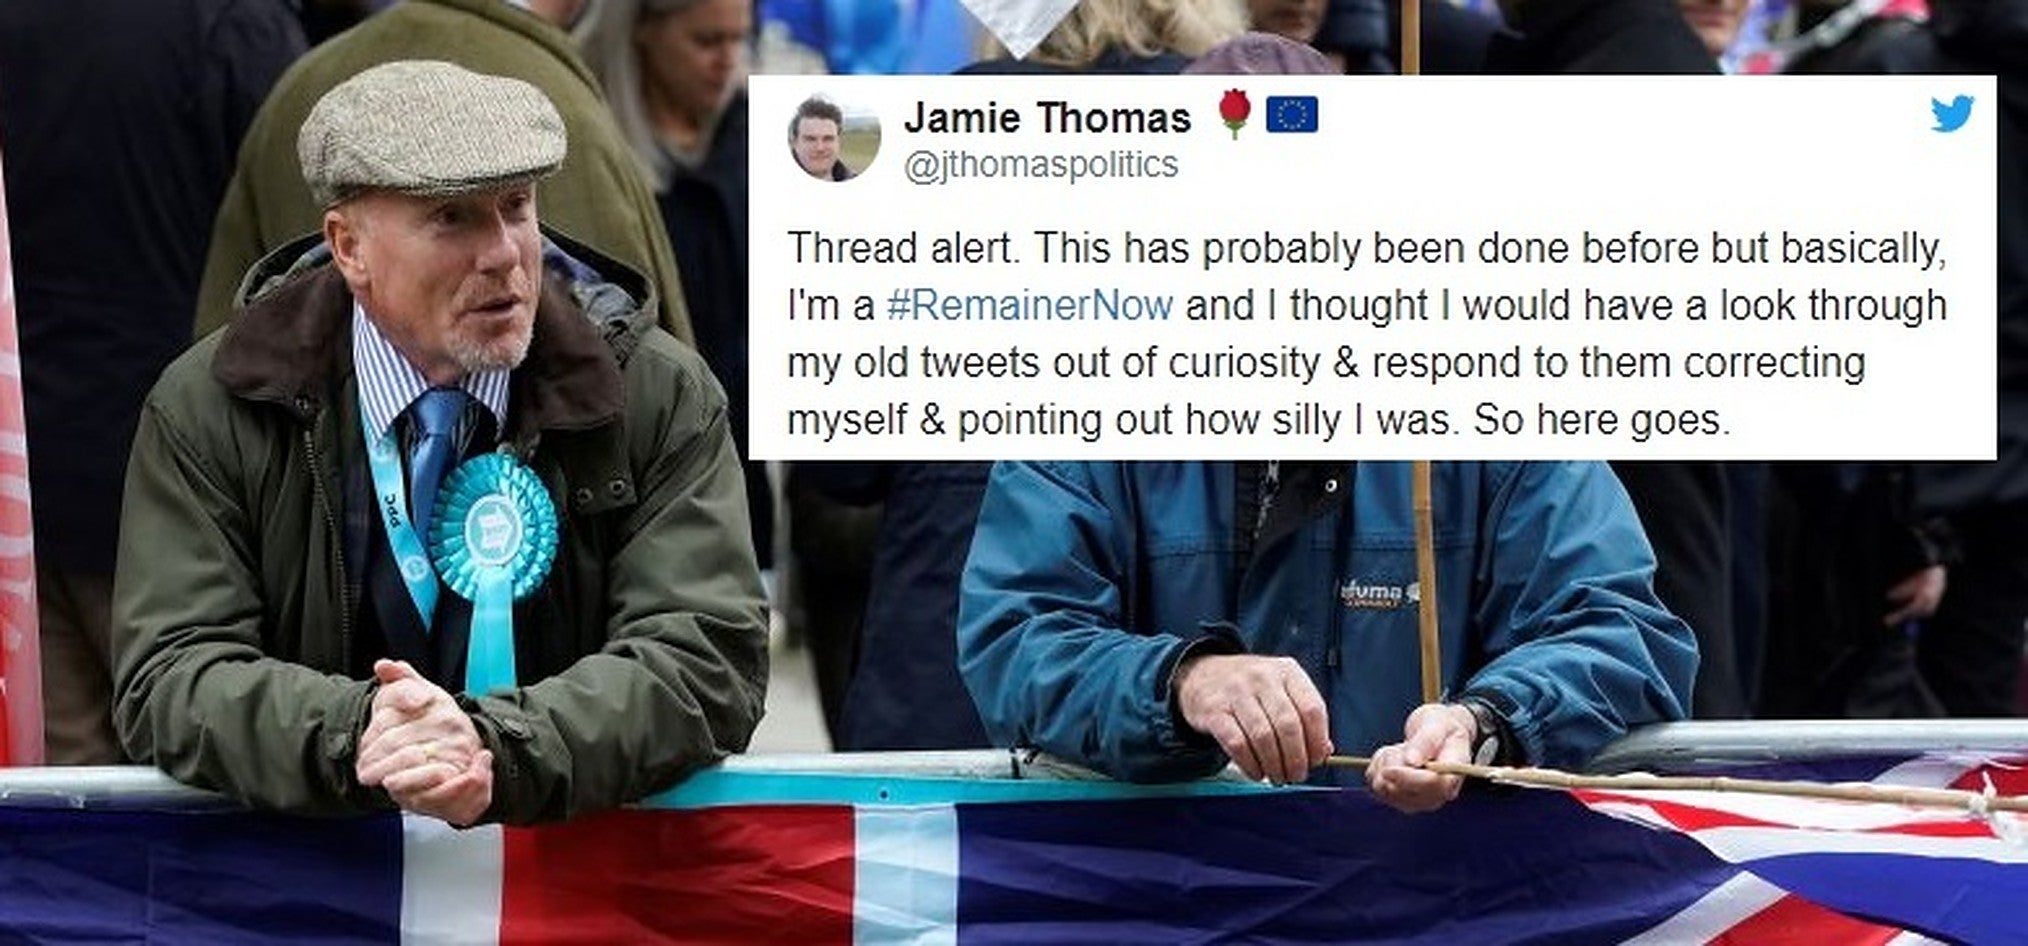 This former Brexiteer went through all his old tweets and pointed out where he went wrong